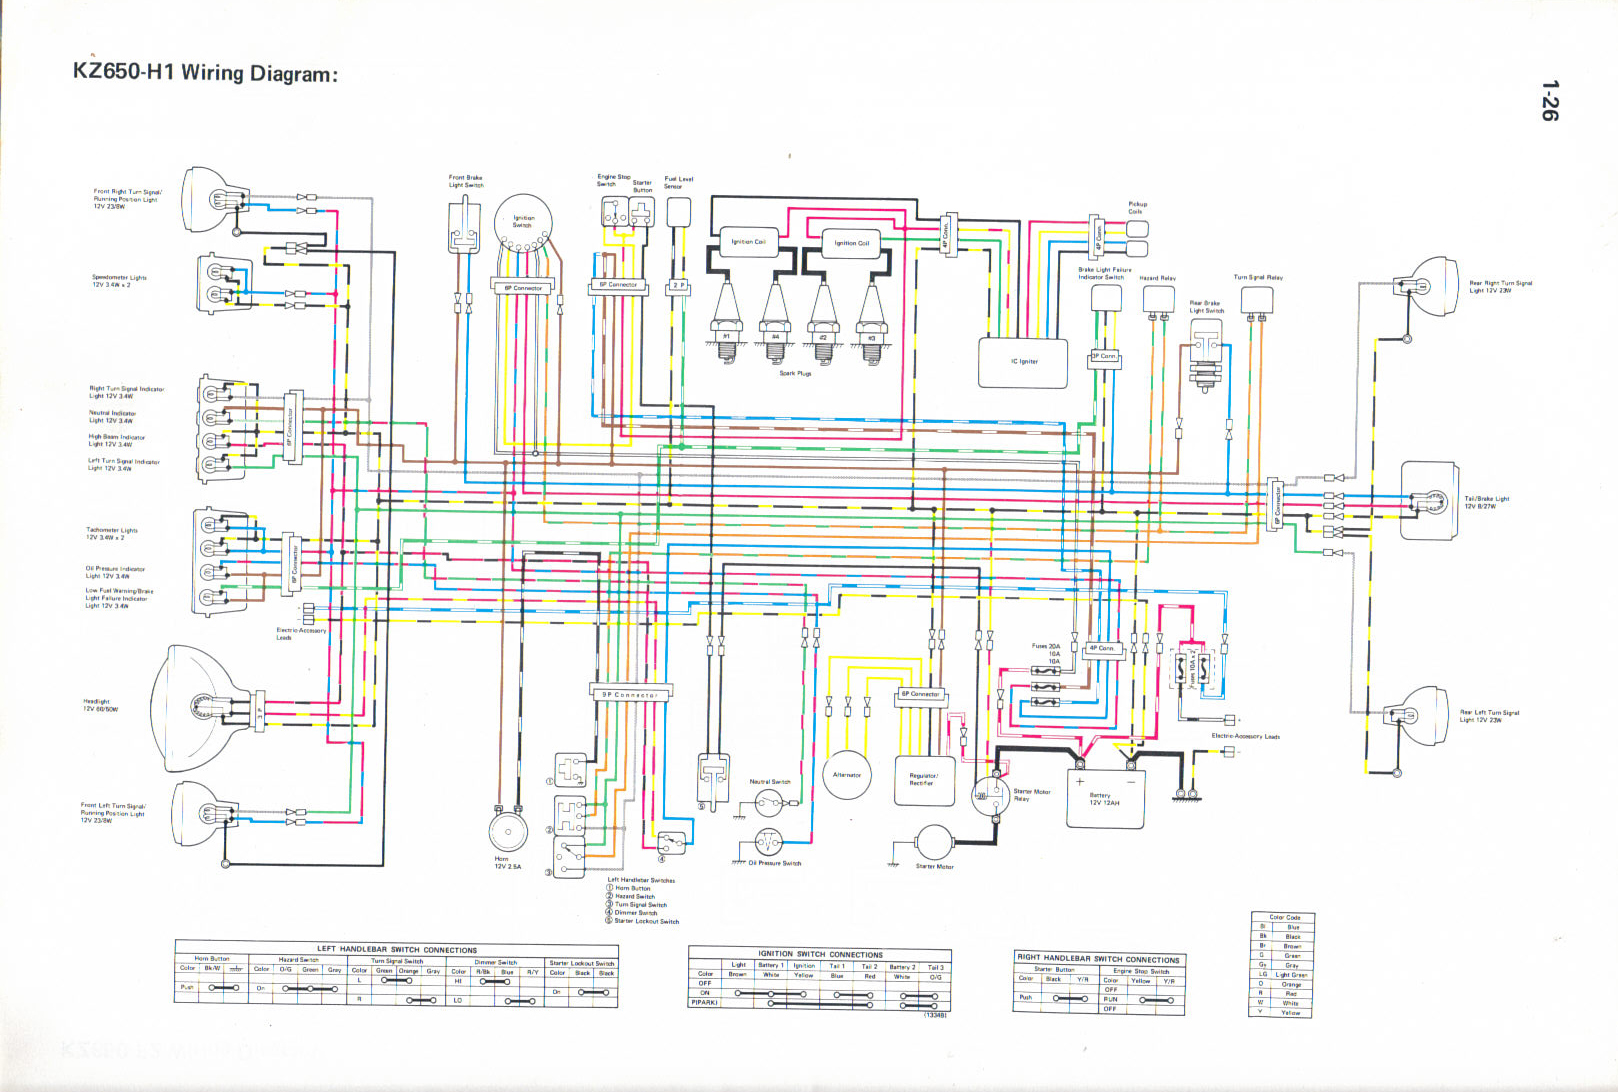 K Z 650 H1 Wiring Diagram - Wiring Diagram Part Kawasaki Atv Wiring Diagram on kawasaki atv engine diagram, yamaha atv wiring diagram, kawasaki prairie 400 wiring diagram, kawasaki prairie 300 wiring diagram, kazuma atv wiring diagram, kawasaki 100 wiring diagram, kawasaki mule 2500 fly wheel, can am atv wiring diagram, kawasaki klf 220 wiring schematic, kawasaki electrical diagrams, kawasaki parts diagram, kawasaki 750 wiring diagram, kawasaki kz650 wiring-diagram, kawasaki engine wiring diagram, kawasaki v-twin wiring diagram, kawasaki 4 wheeler wiring diagram, 220 bayou atv wiring diagram, kawasaki atv transmission diagram, chinese atv transmission diagram, mini atv wiring diagram,